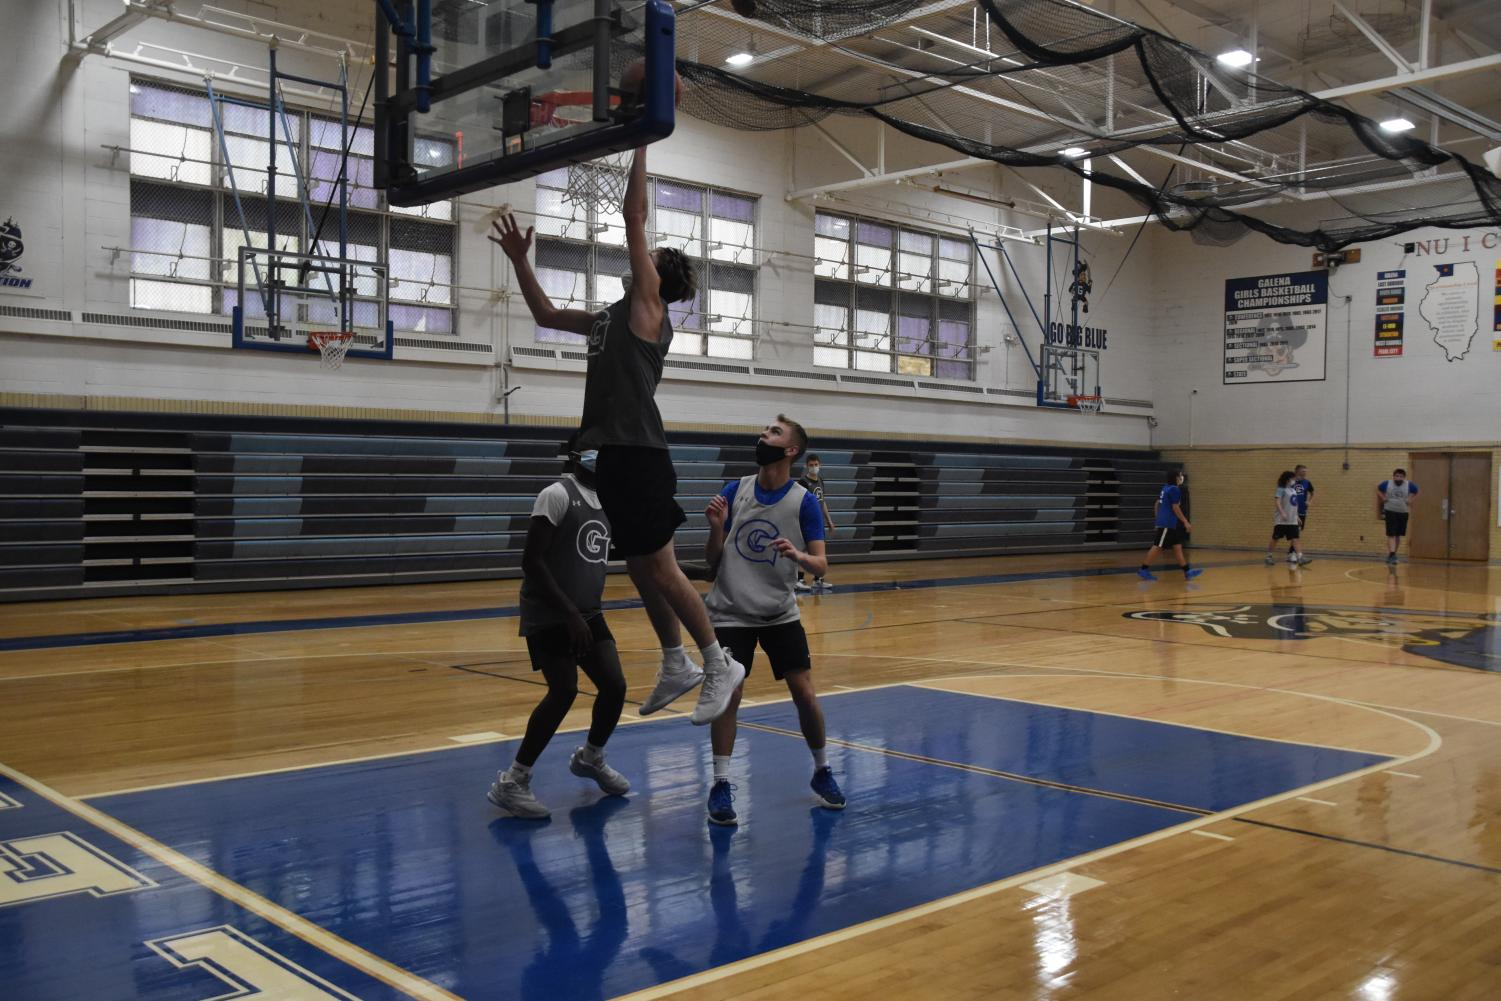 """Working and waiting for their time, Sam Hesselbacher '21 puts up a shot as Ryan Holland '21 and Khalid Newton '21 get ready for the rebound. GHS basketball teams have been practicing without games for a few months before they got the good news that they would be able to start competing again. The players have missed being able to actually compete against other teams. """"I just miss being able to compete with my teammates and playing in games,"""" said Ryan Holland '21. Thankfully, our teams are now back on the court playing the sport they love and GHS wishes them all the best of luck."""